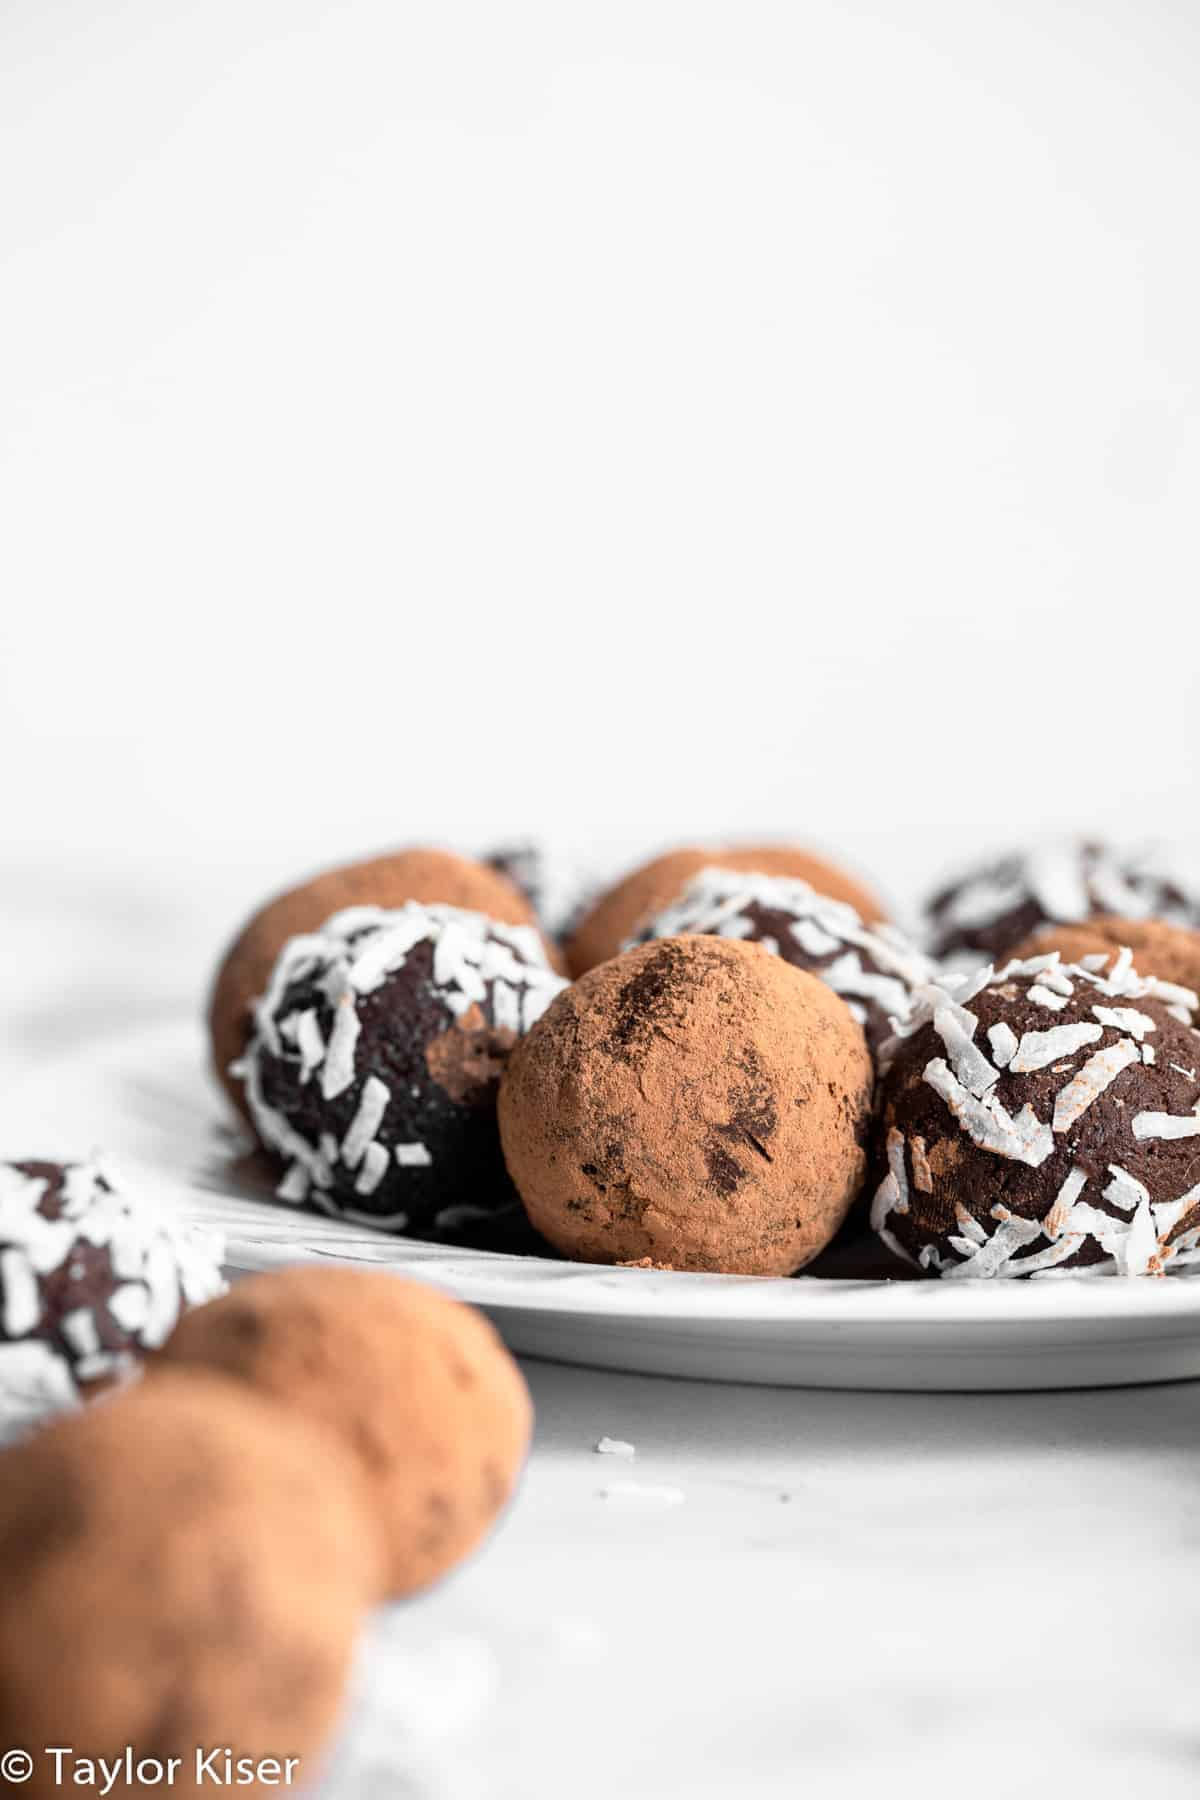 chocolate avocado truffles on a plate covered in cocoa powder